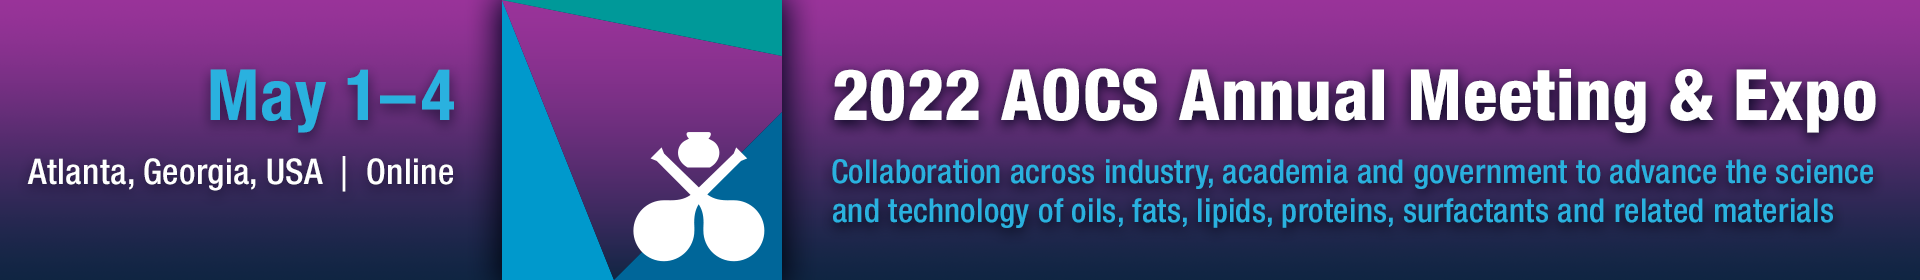 2022 AOCS Annual Meeting & Expo Banner